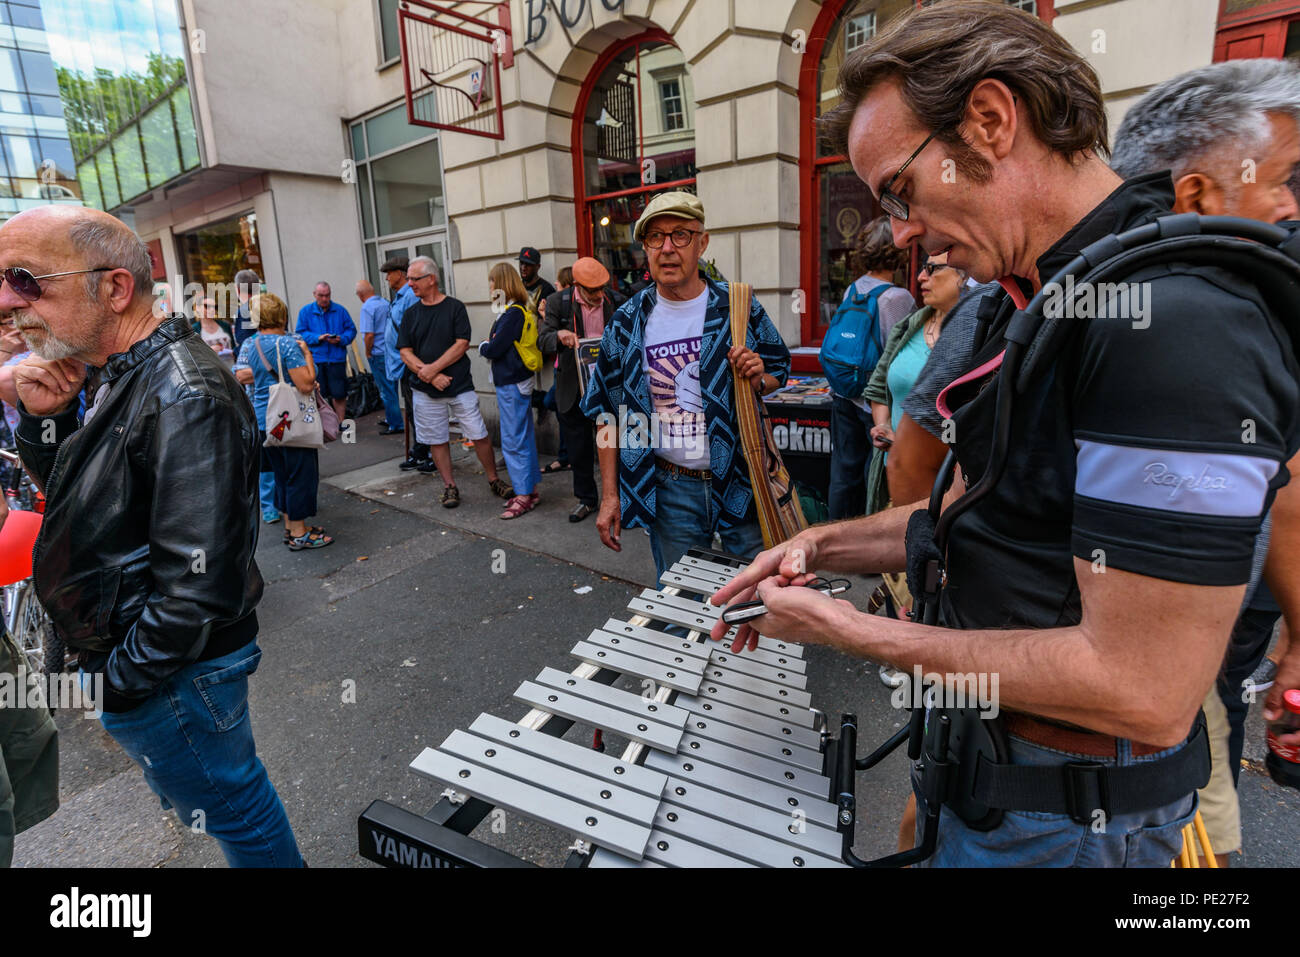 London, UK. 11th August 2018. 11th August 2018. Several hundred people from all parts of the labour movement come to show solidarity and support the Bookmarks socialist bookshop a week after a group of Nazi thugs from 'Make Britain Great Again' invaded the shop in central London, shouting racist slogans and wrecking book displays. Credit: ZUMA Press, Inc./Alamy Live News - Stock Image